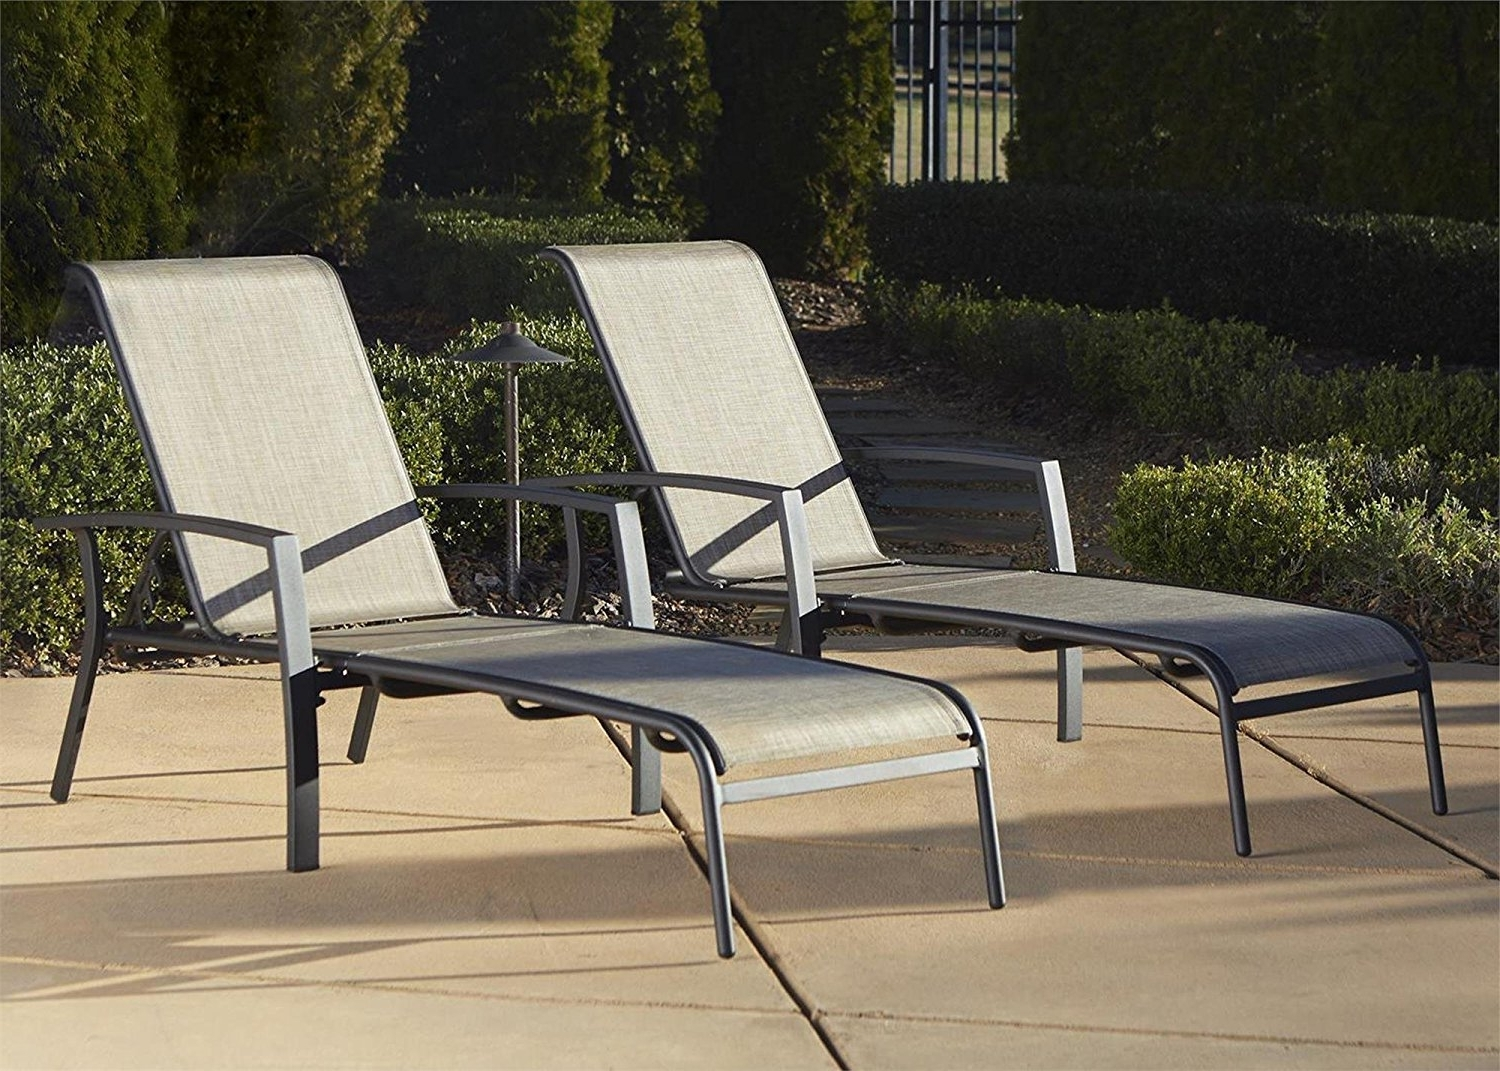 Preferred Brown Outdoor Chaise Lounge Chairs Inside Amazon: Cosco Outdoor Adjustable Aluminum Chaise Lounge Chair (View 11 of 15)